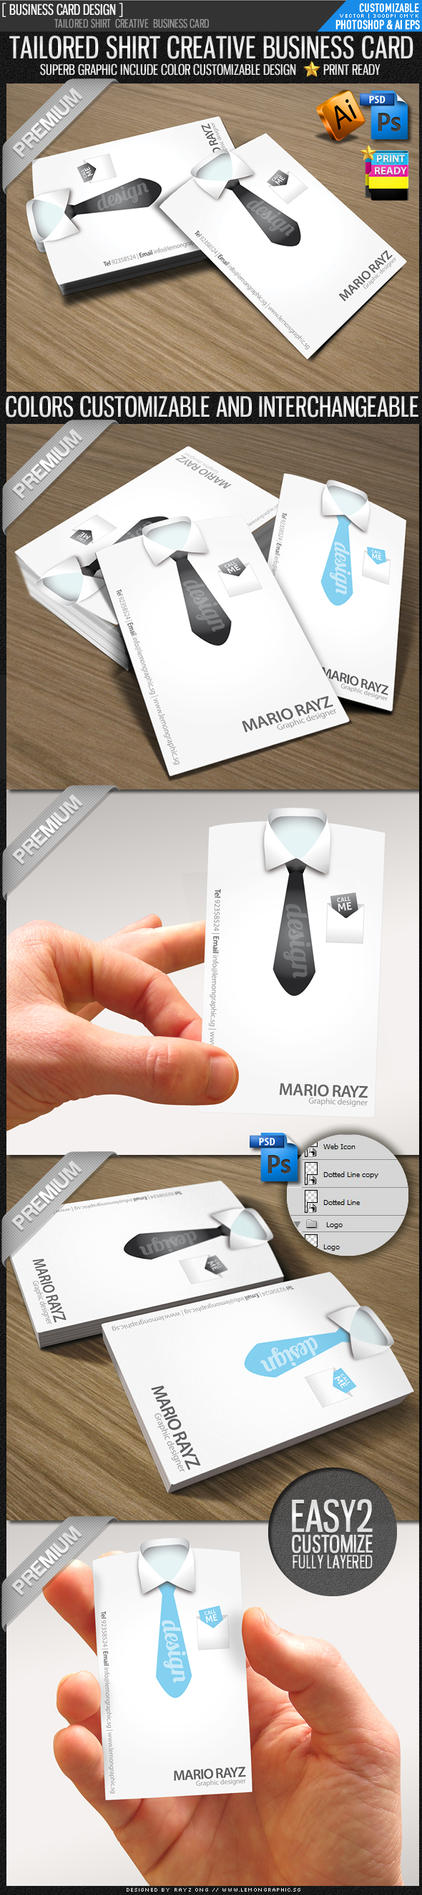 Tailored shirt die cut card by Lemongraphic